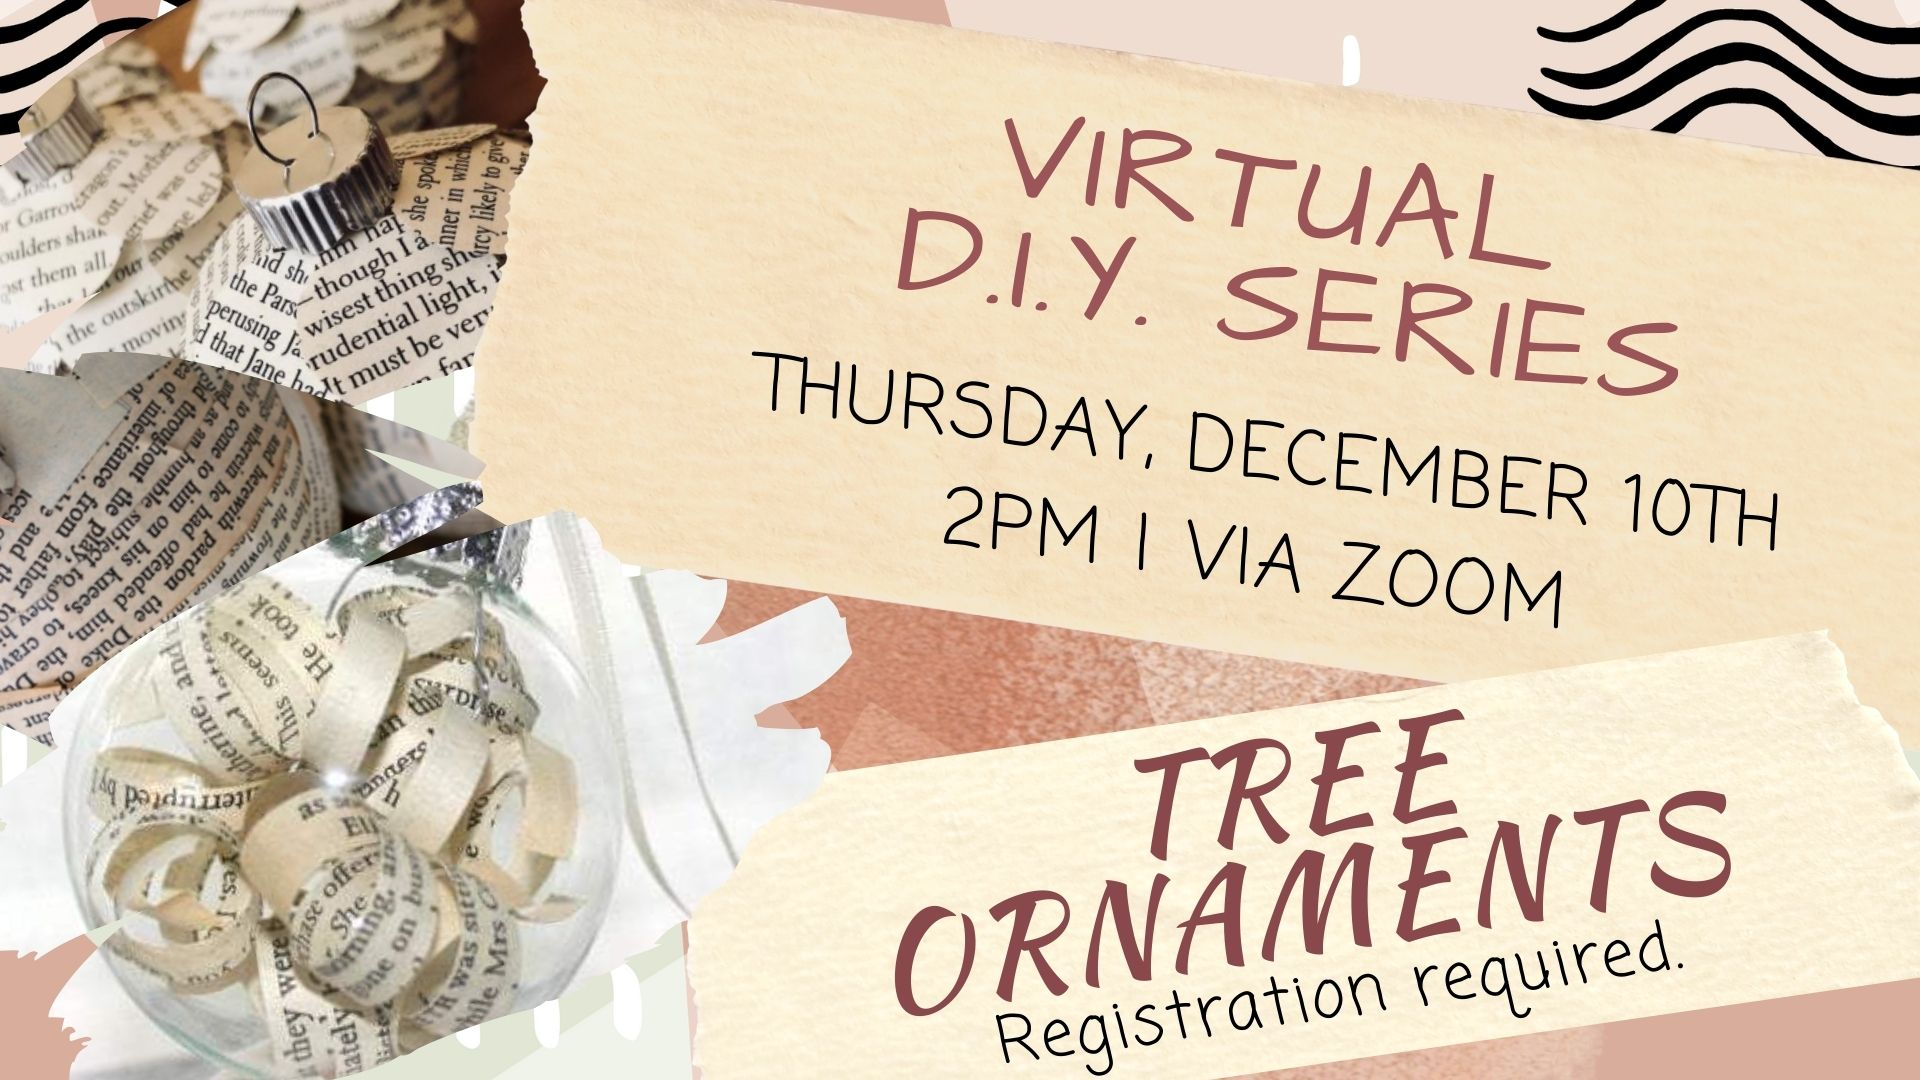 Virtual DIY Series: Tree Ornaments